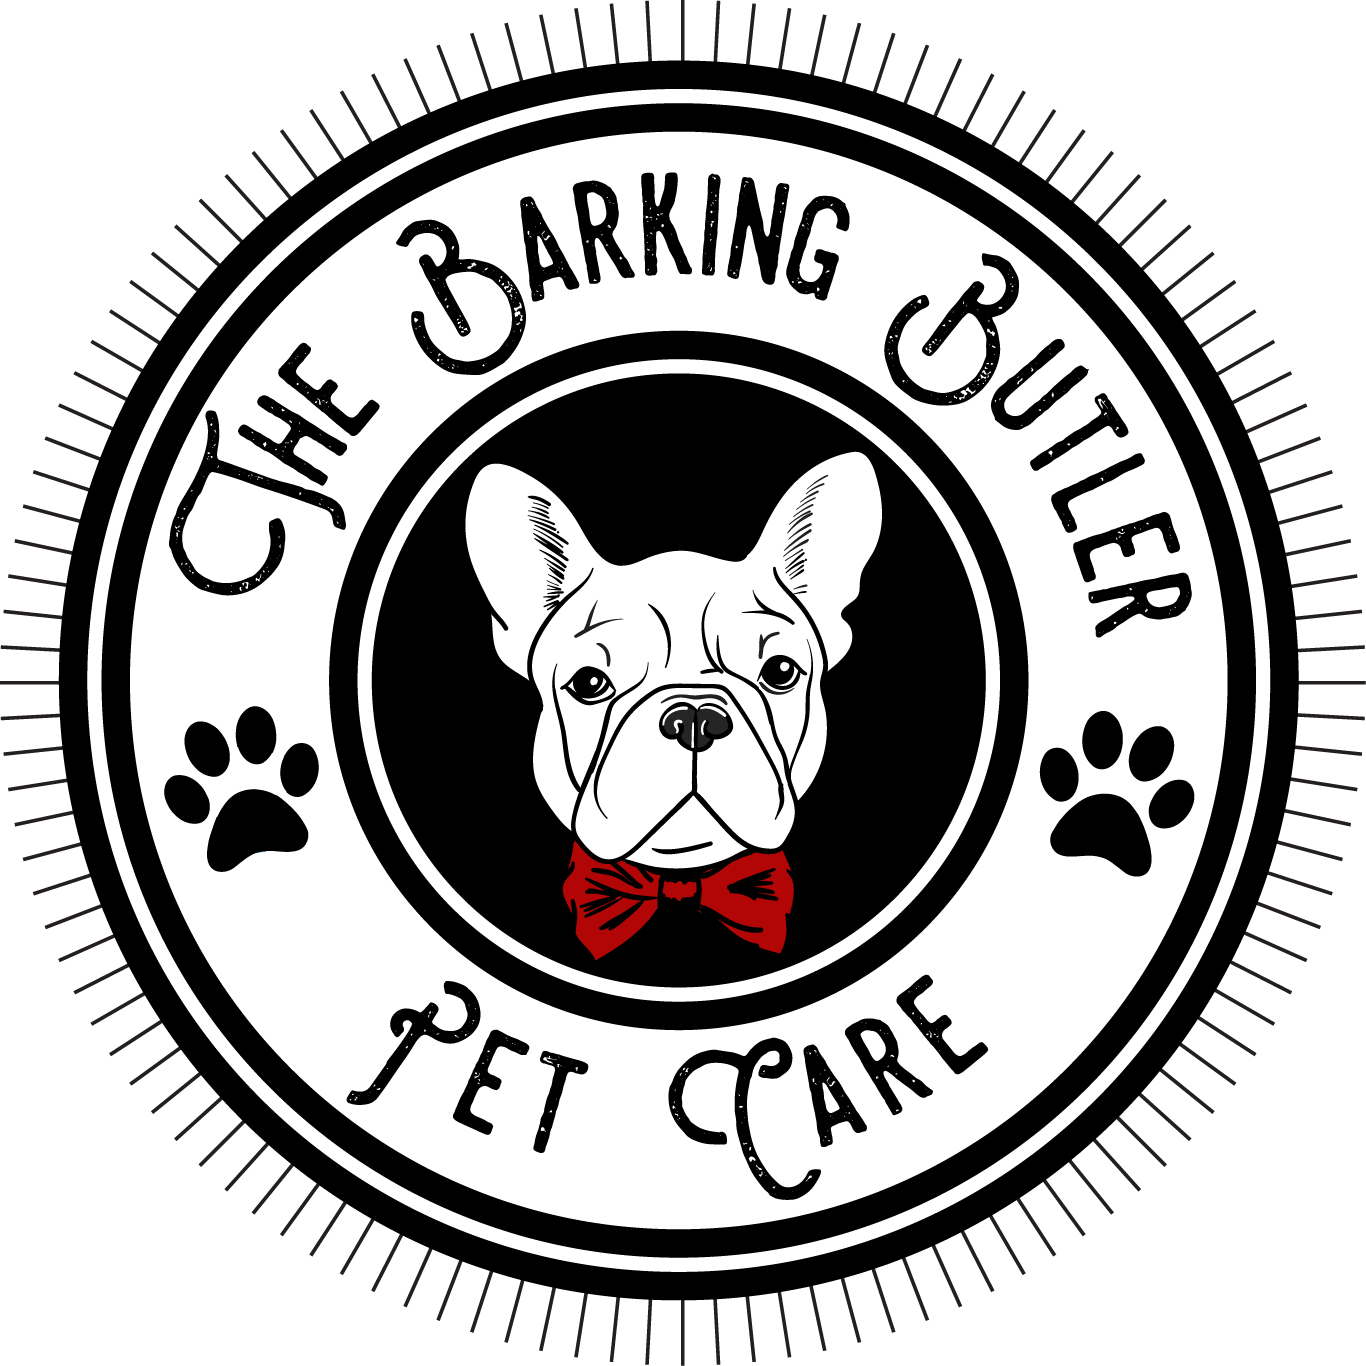 The Barking Butler Pet Care